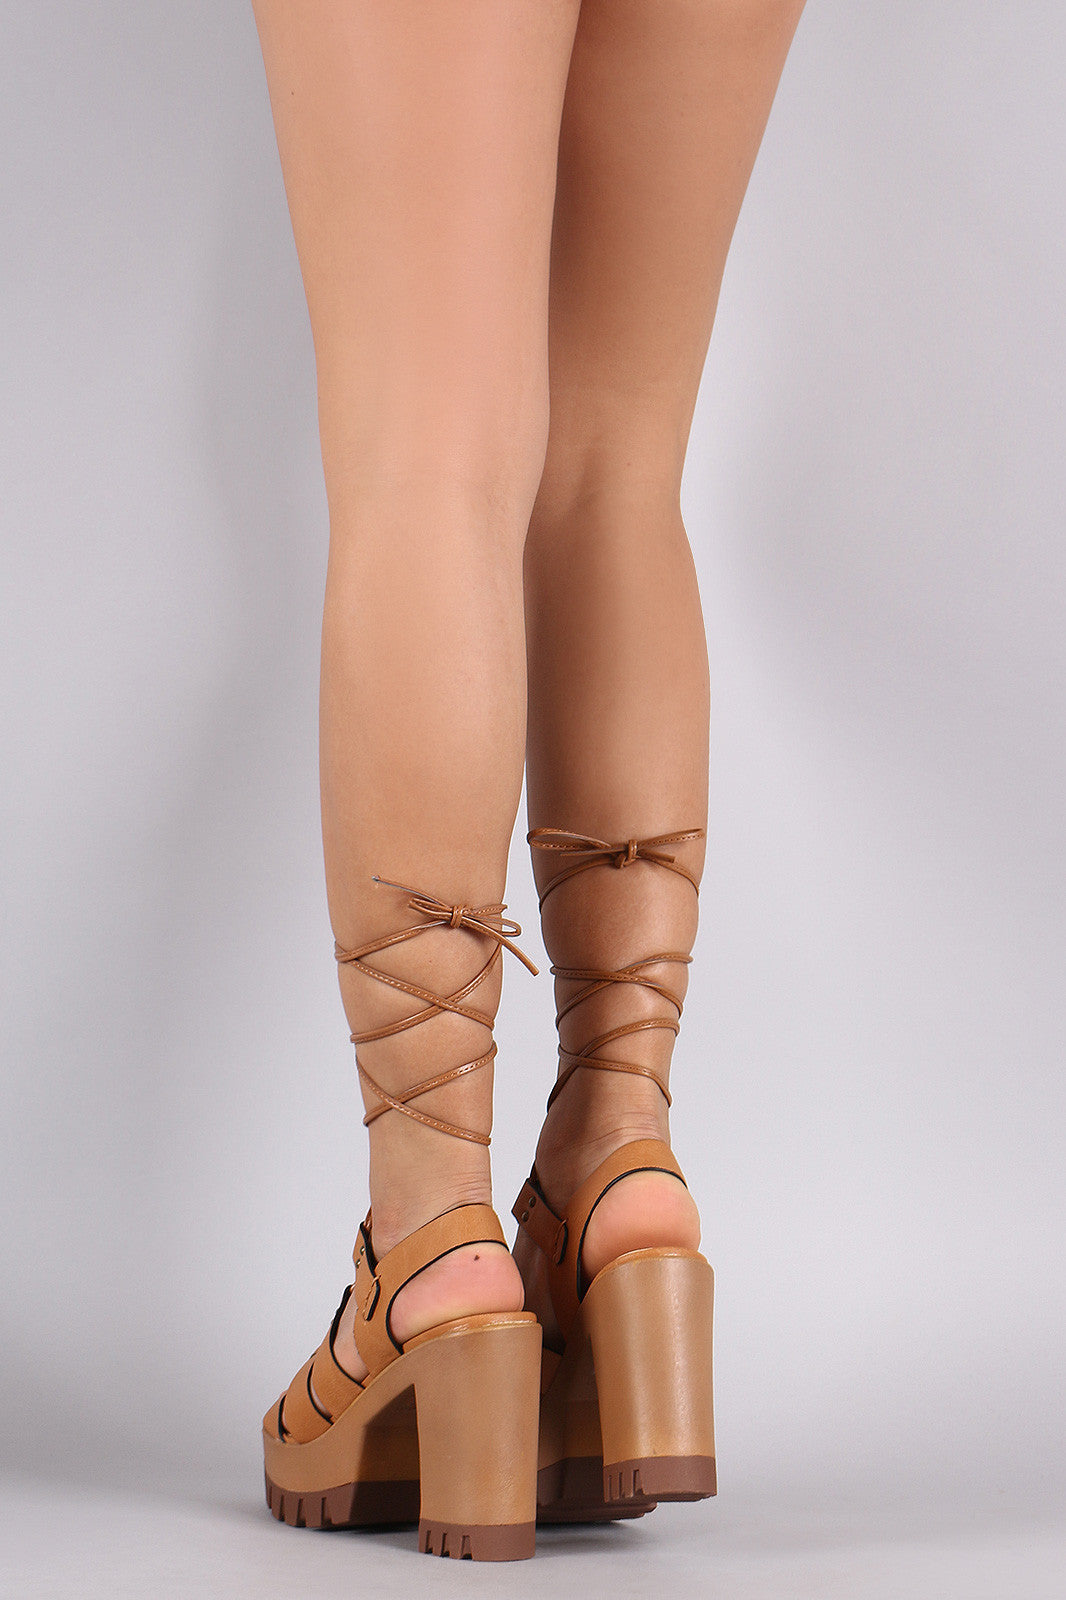 Wild Diva Lounge Strappy Lace-Up Lug Sole Platform Heel - Thick 'N' Curvy Shop - 2